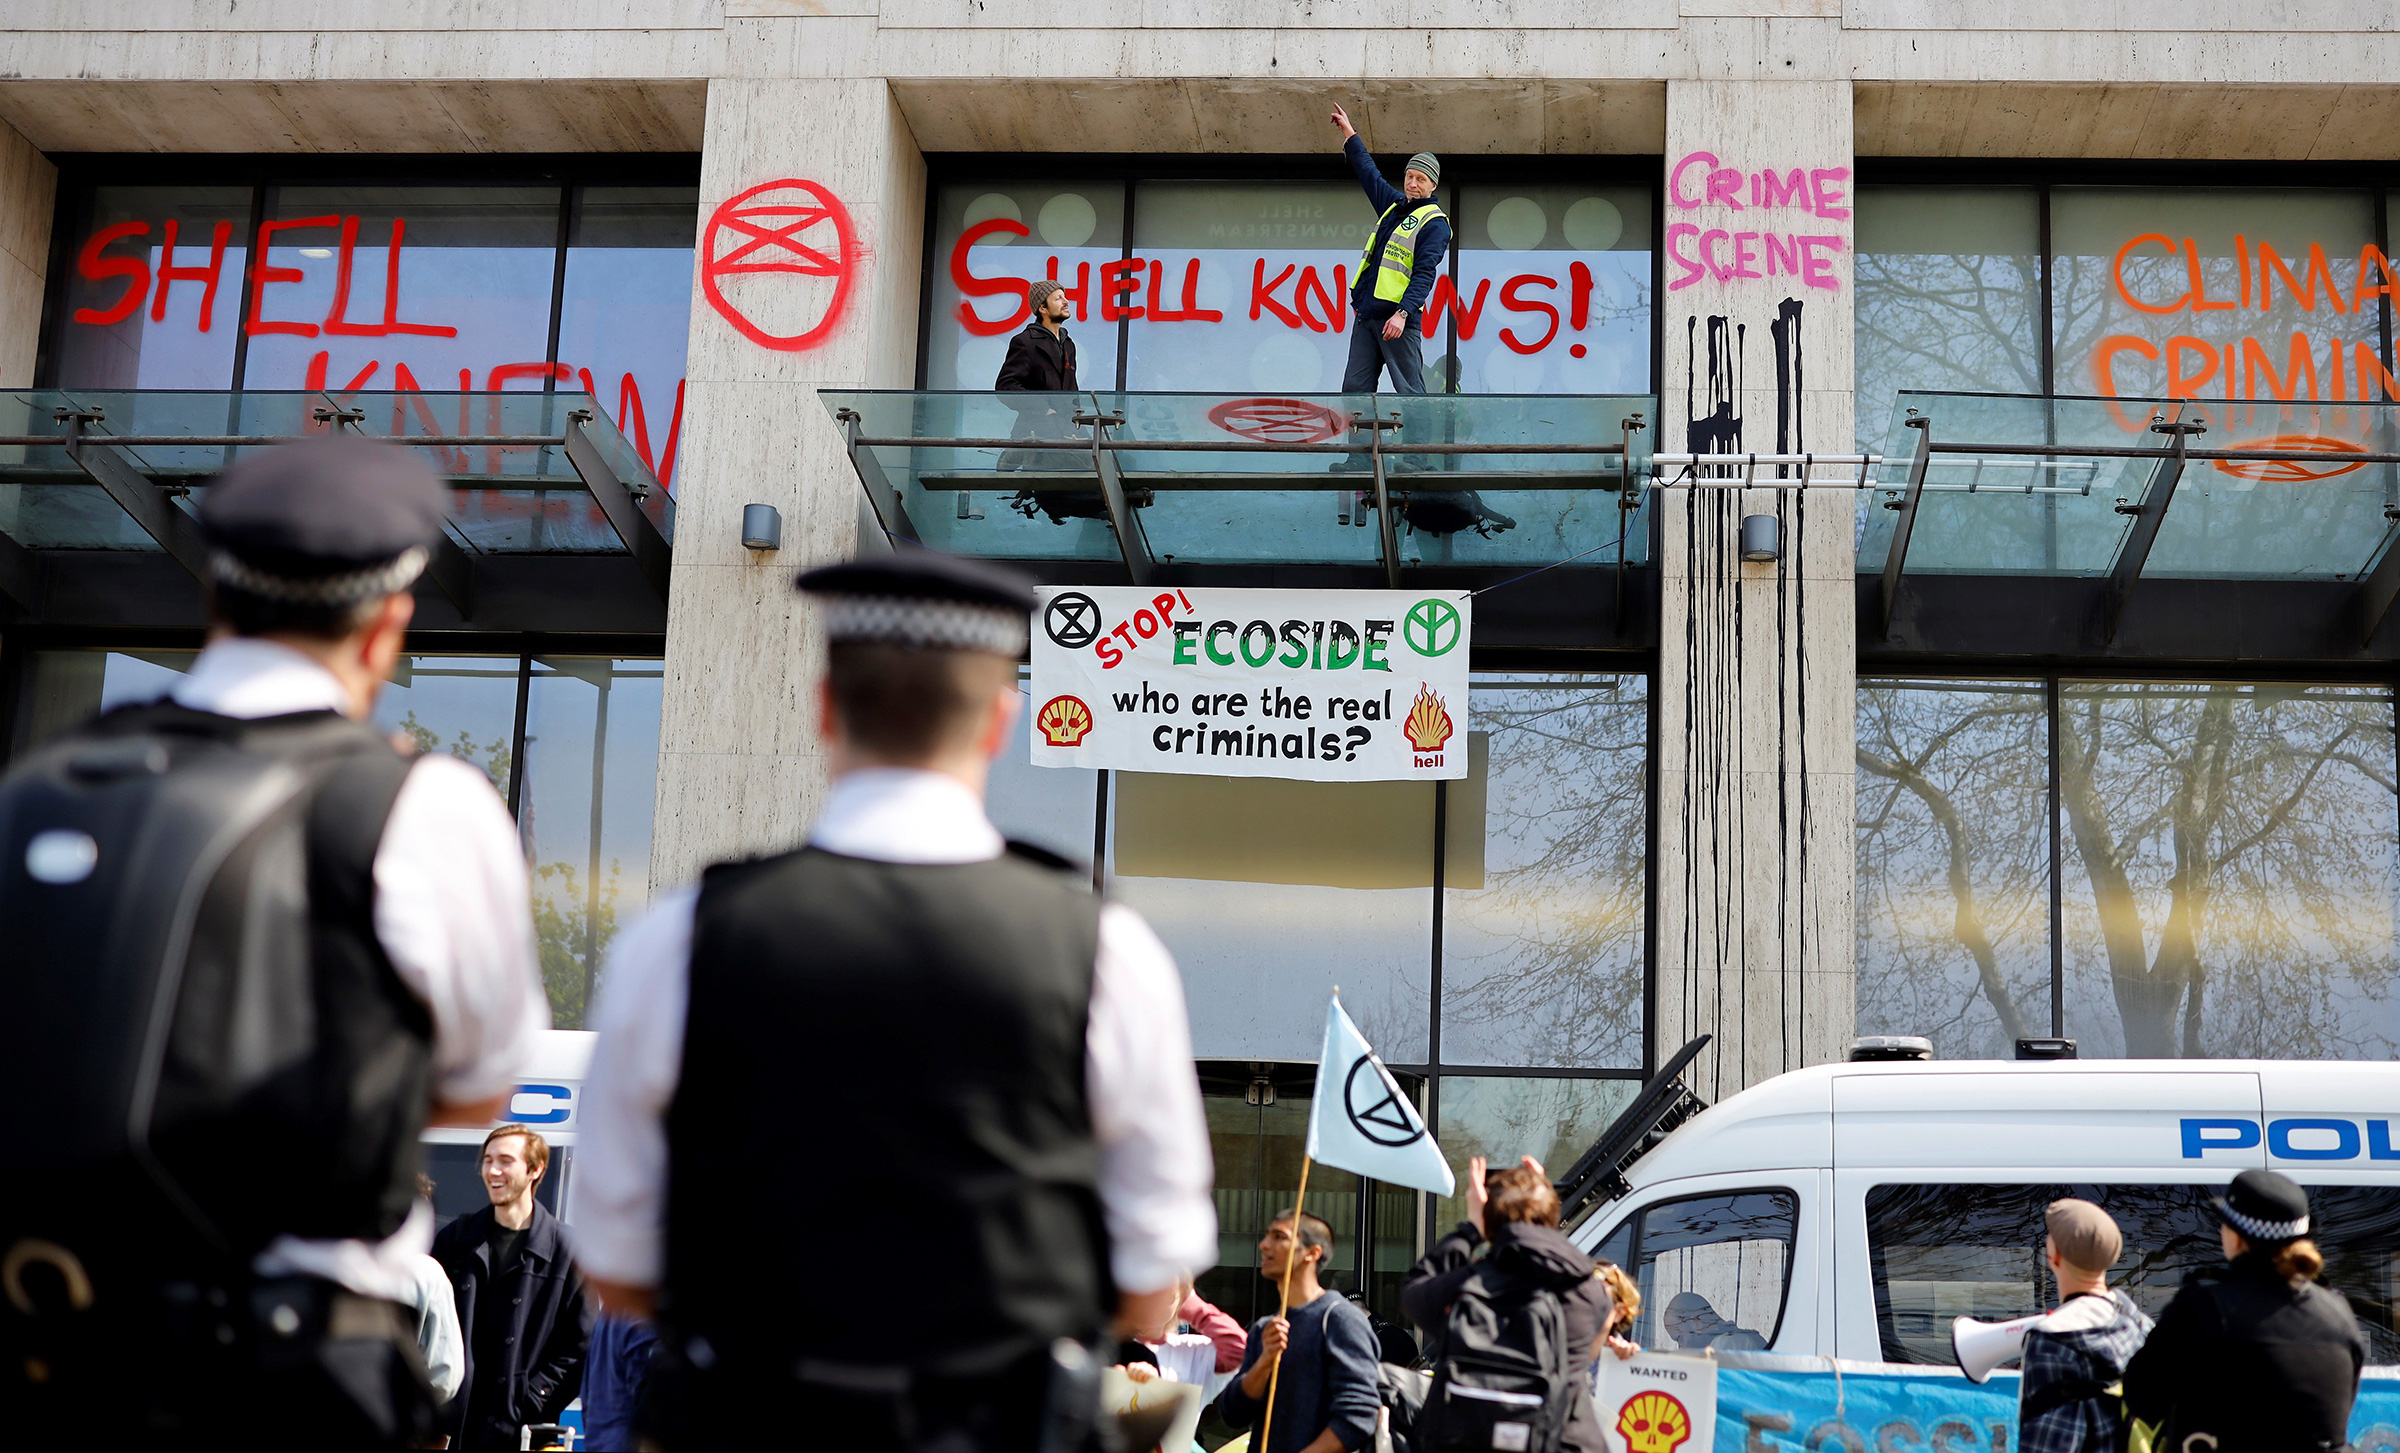 Extinction Rebellion protests outside Shell's London office in April 2019